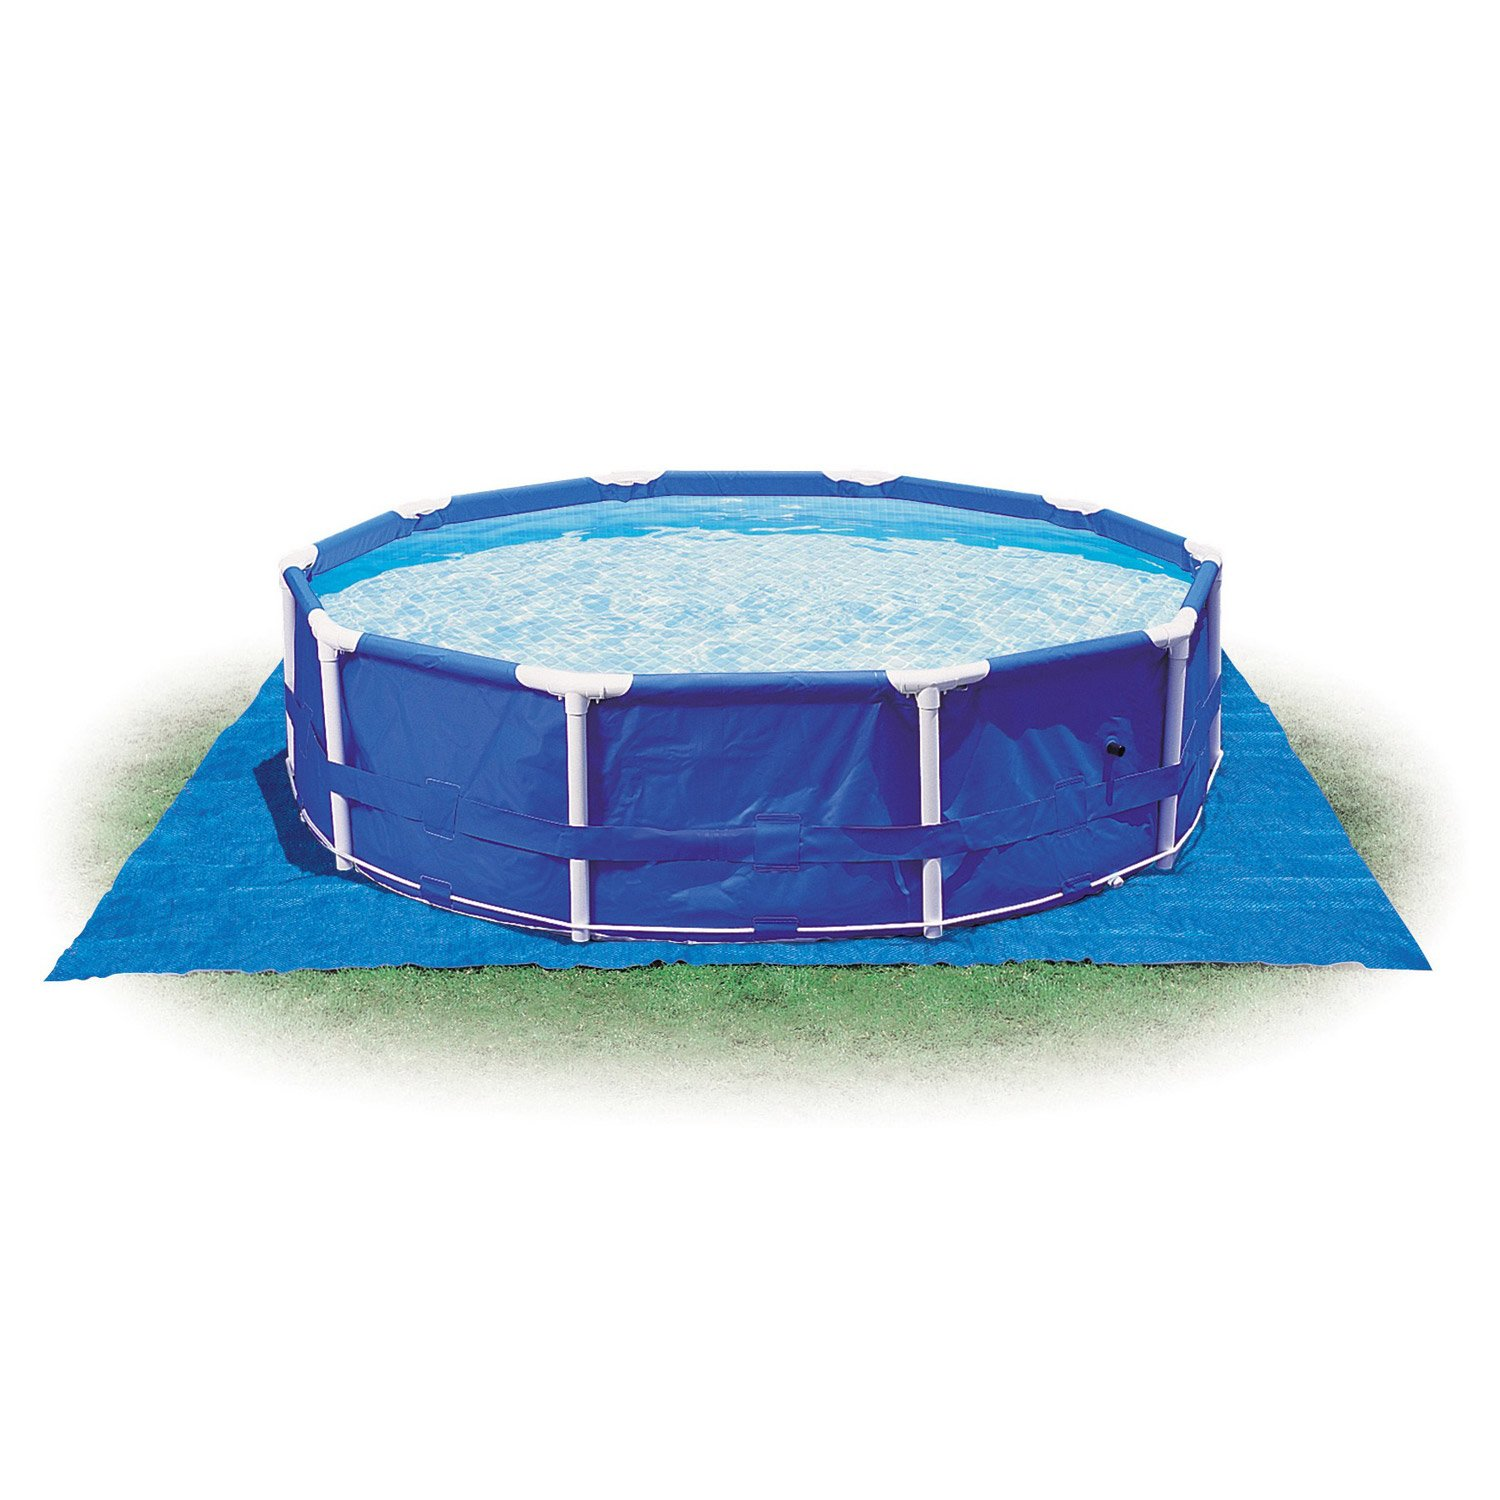 Tapis de sol uni intex carre 472 x 472 cm x for Tapis sol piscine